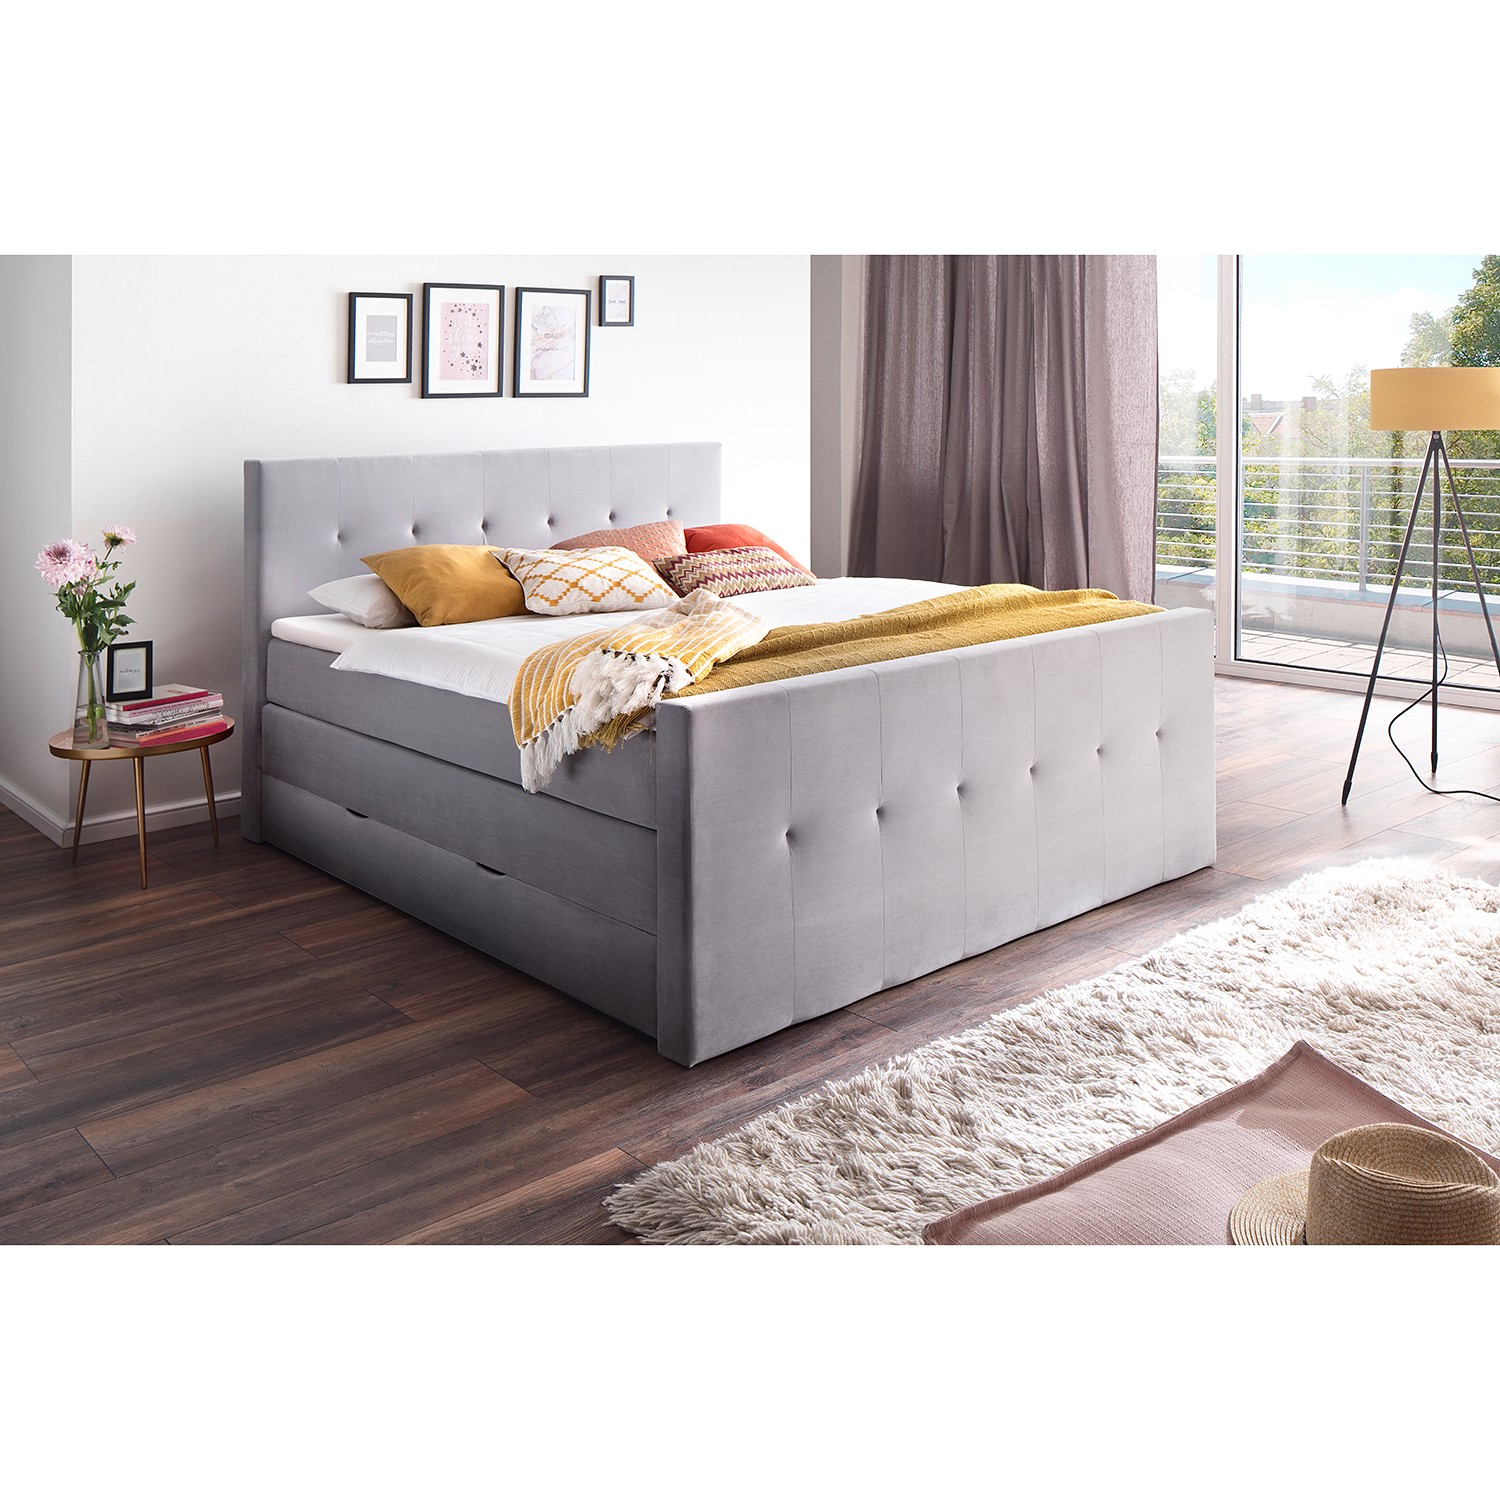 Beste Boxspringbetten Test ᐅᐅ10 2019 Home24 Boxspringbett Alle Top Produkte Am